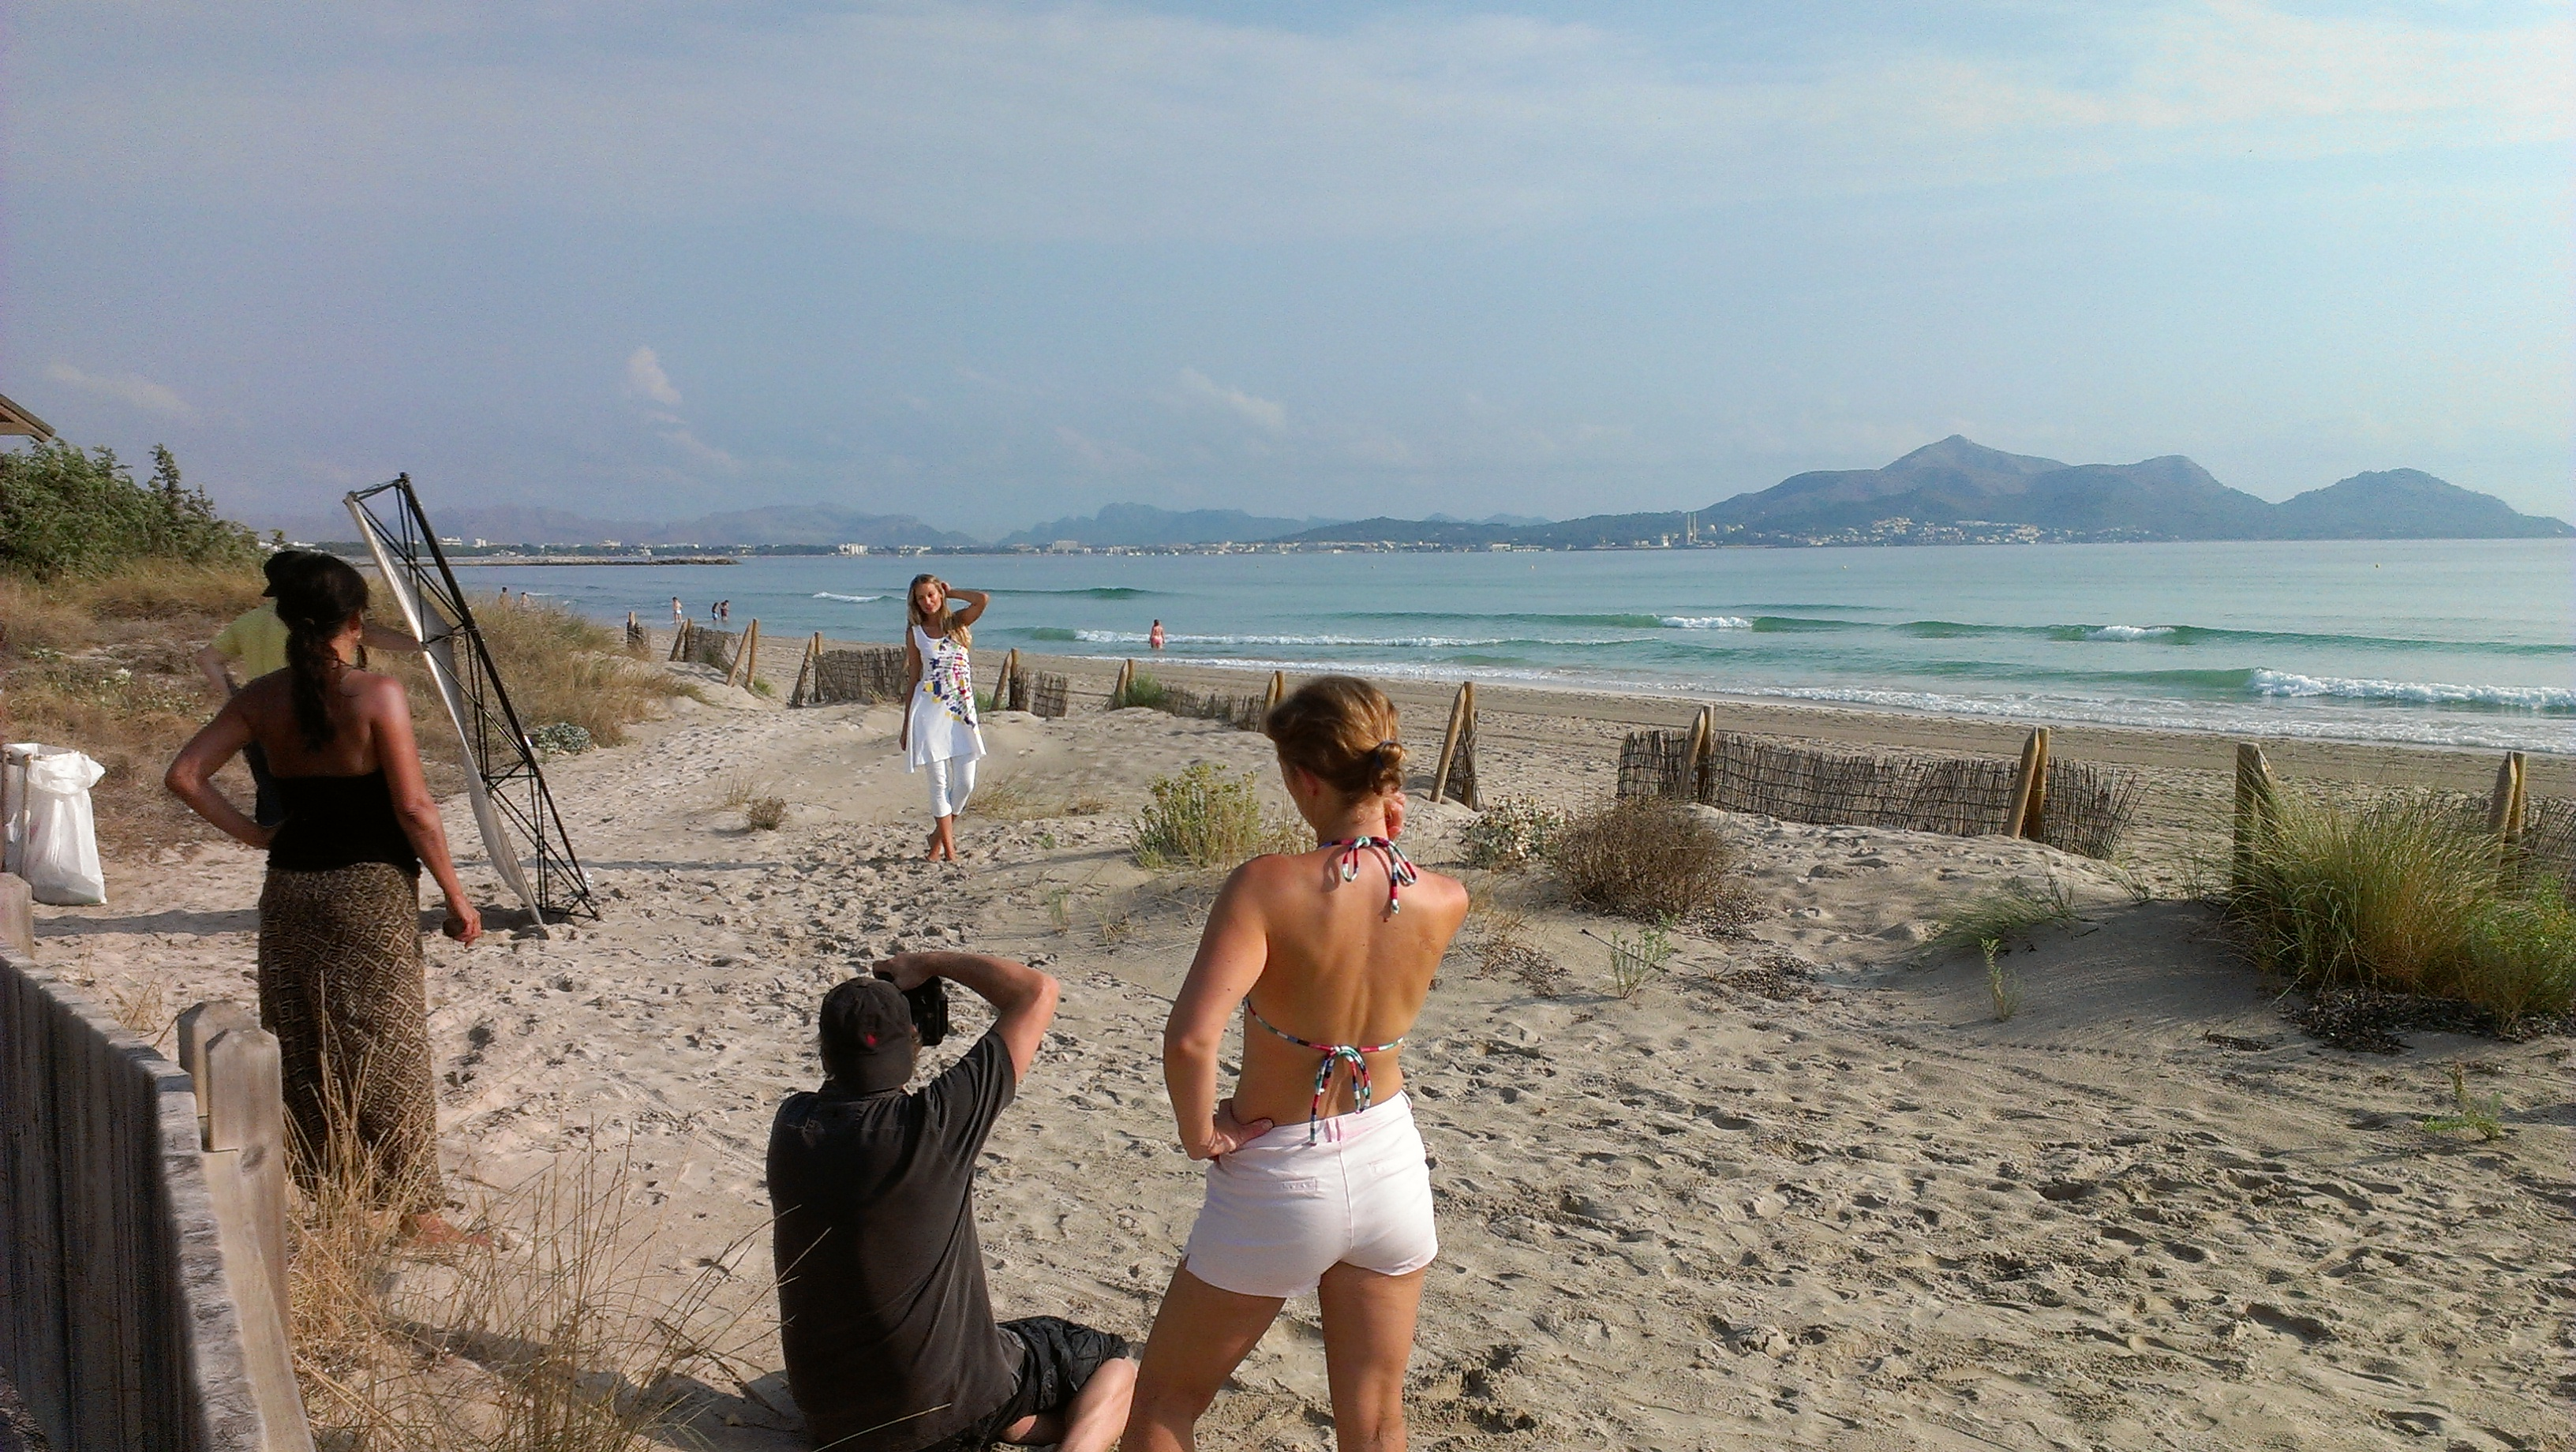 Renata Zanchi - Shooting under the hot Spanish sun in Mallorca - September 2012